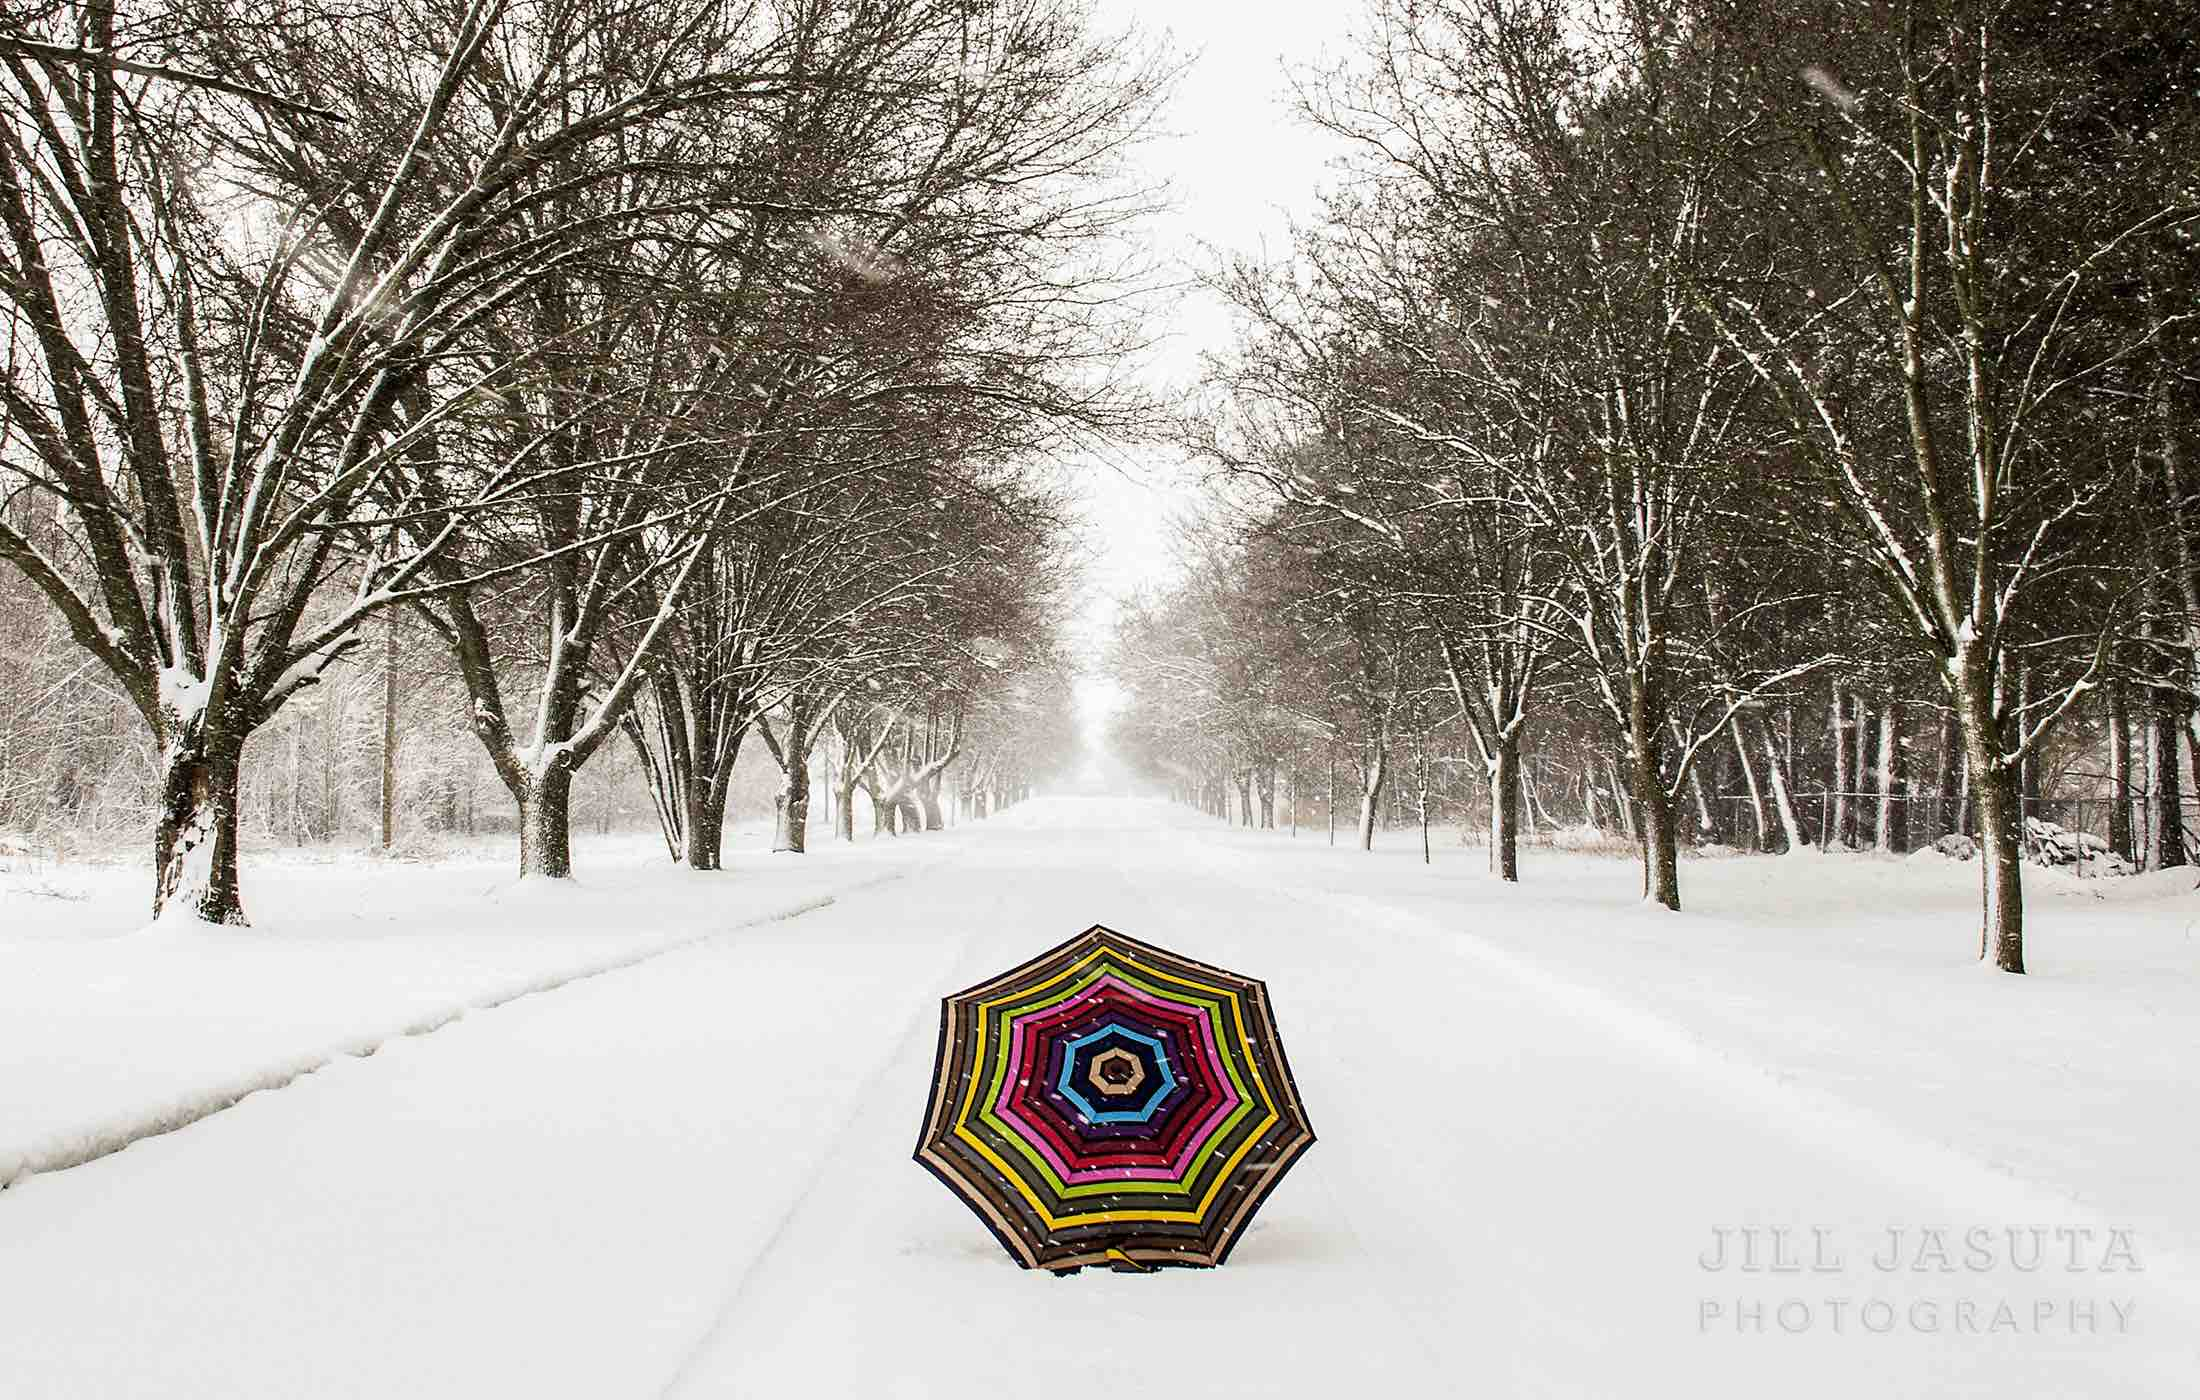 Umbrella in the Snow